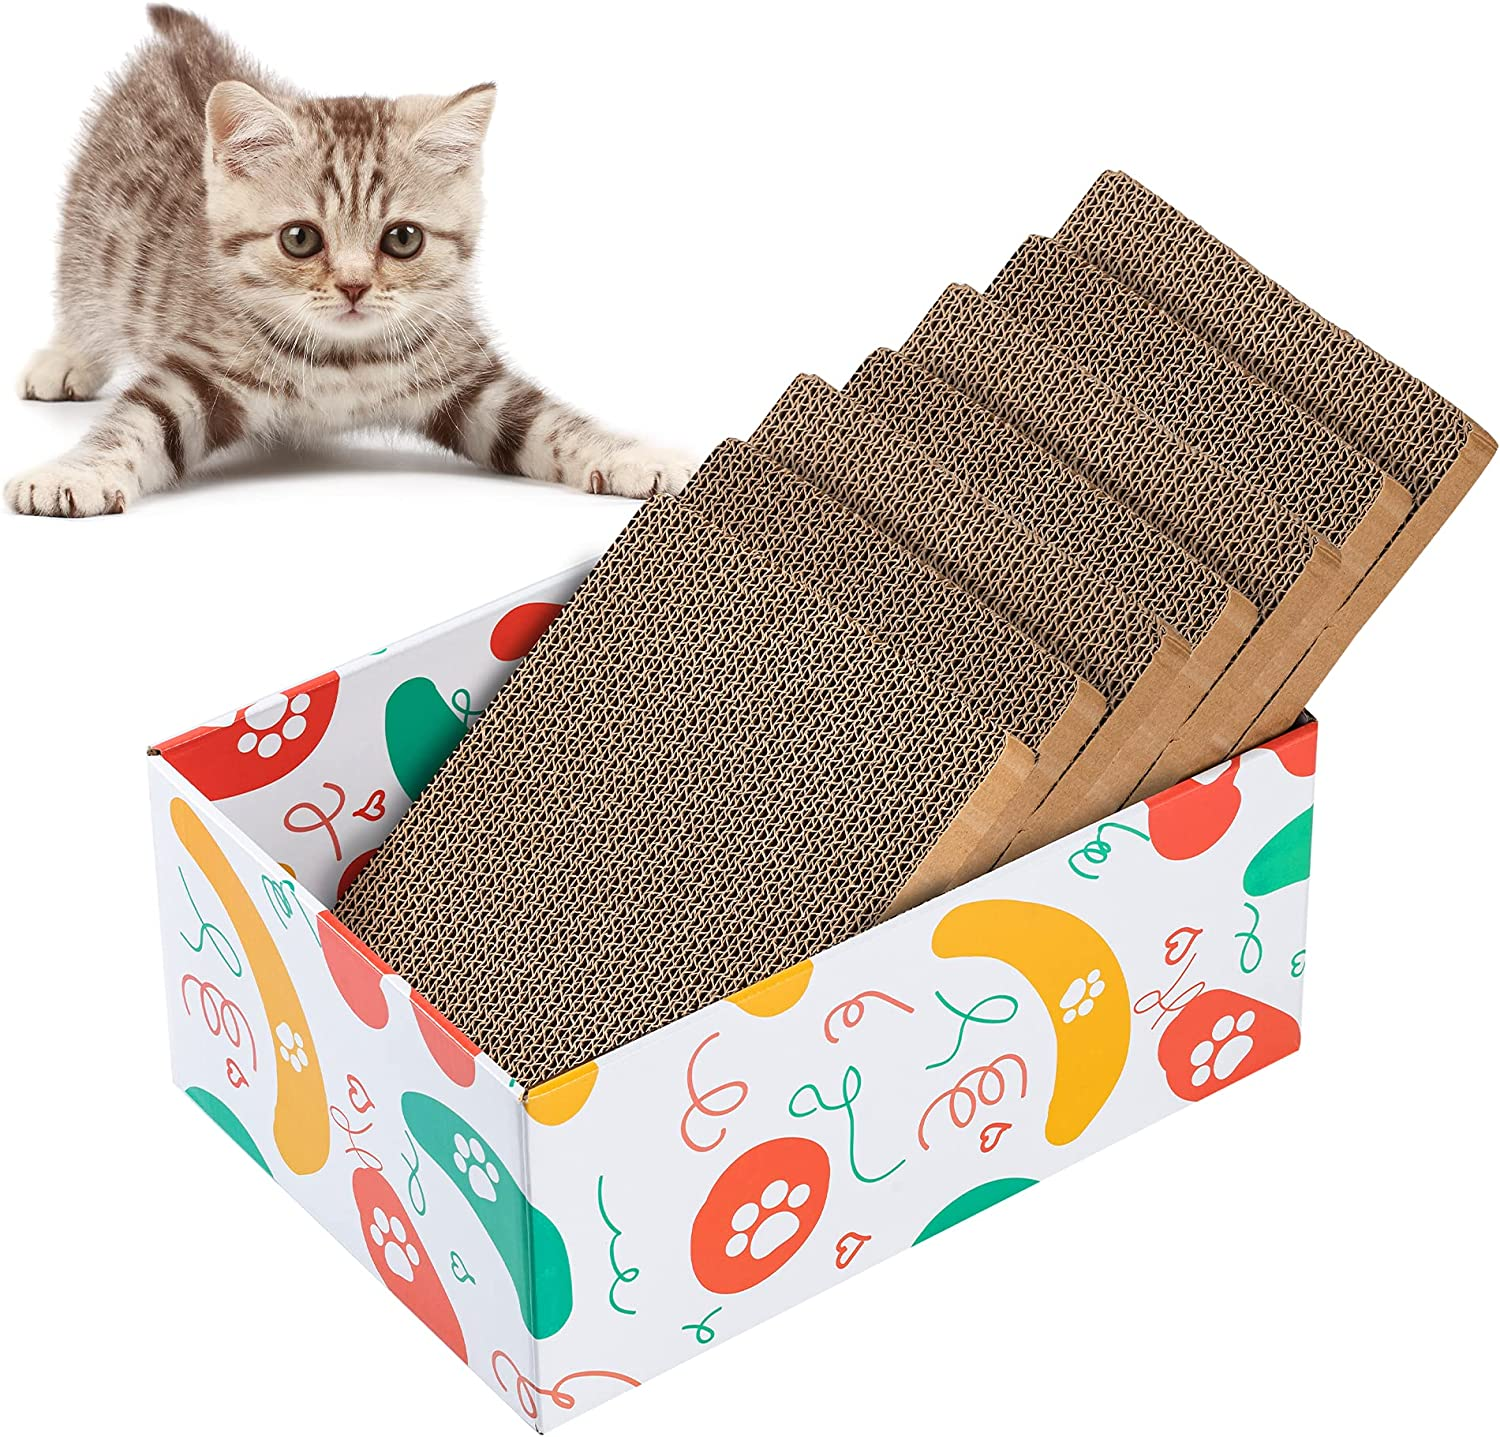 DOKDAK Cat Scratcher Box with Cat Scratching pad, 7 PCS Reversible Corrugated Cardboard, Scratcher Lounge cattery for Sofa Furniture Protection, Cat Training Toy Refill Box